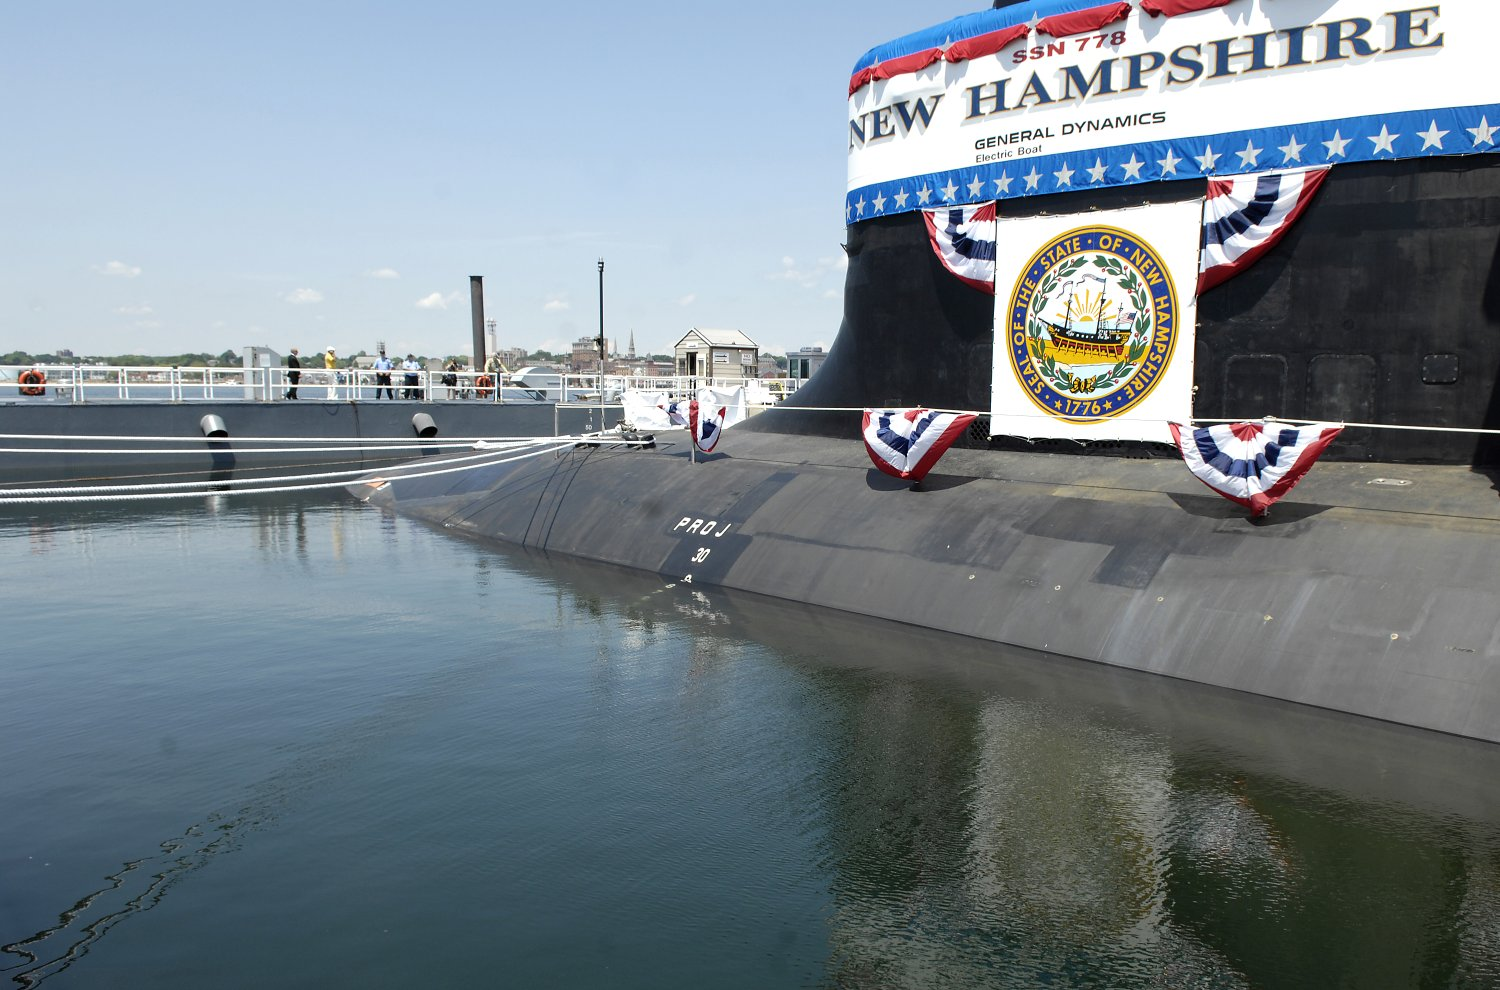 Атомная ударная подводная лодка USS New Hampshire (SSN 778) класса Virginia.